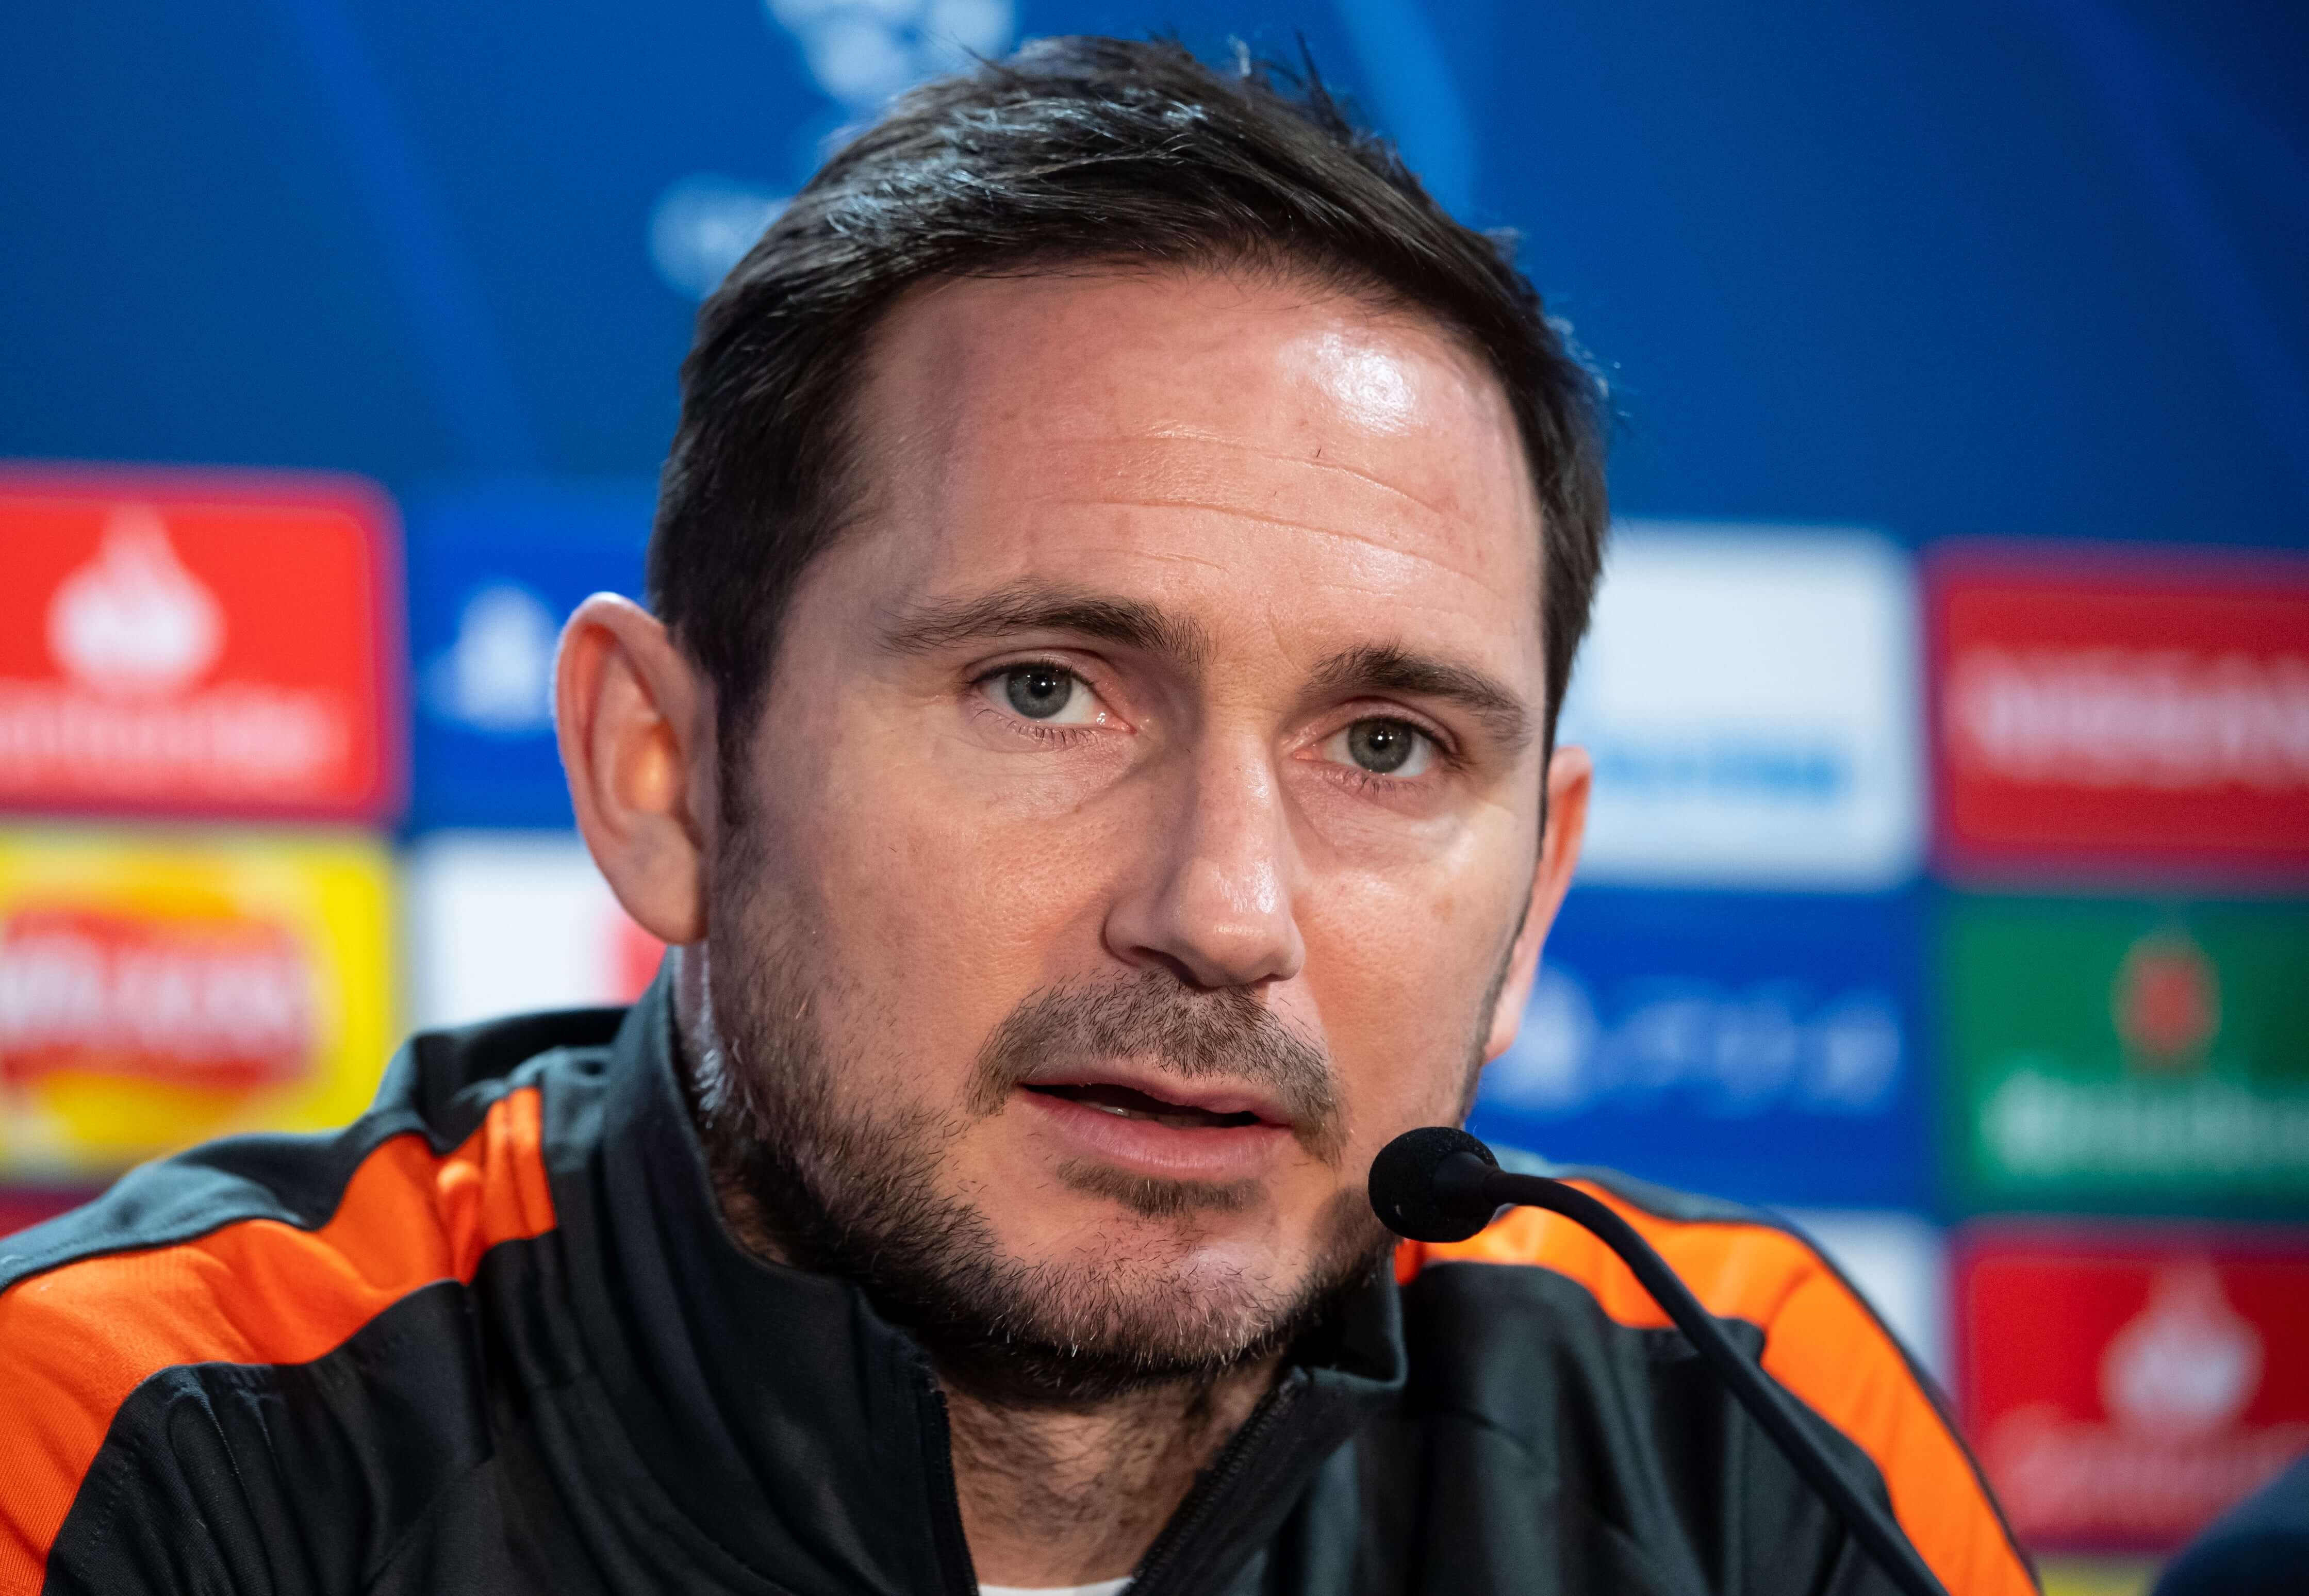 Chelsea v Bayern: Lampard has decisions to make ahead of Stamford Bridge clash